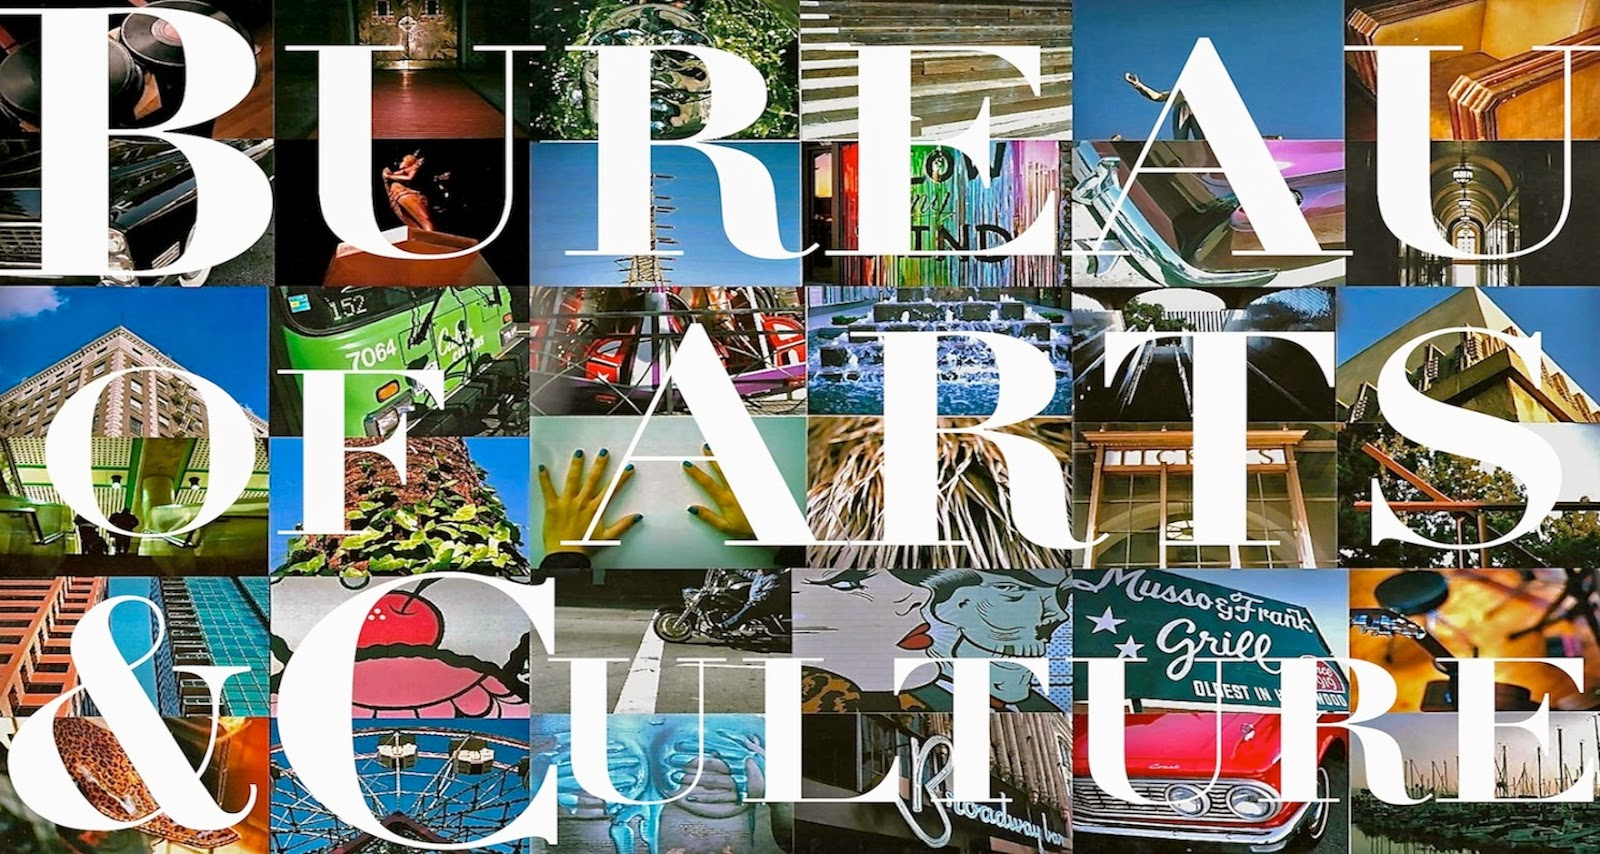 SUBMIT YOUR ART, MUSIC, FILM EVENTS HERE AT BUREAU OF ARTS AND CULTURE MAGAZINE BAY AREA SITE